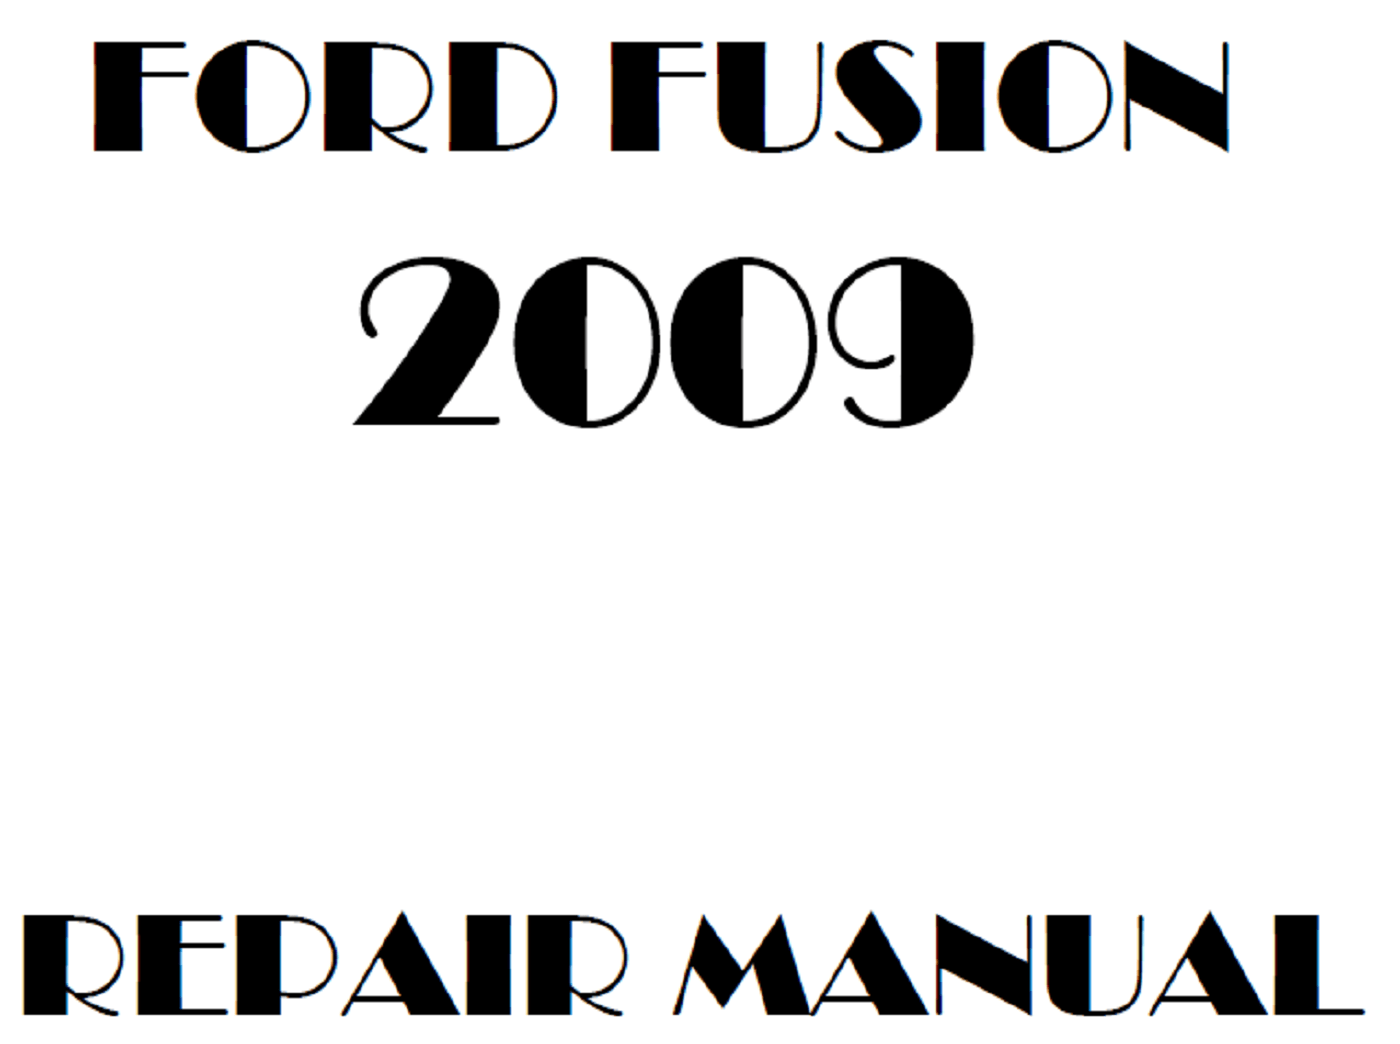 2009 Ford Fusion repair manual